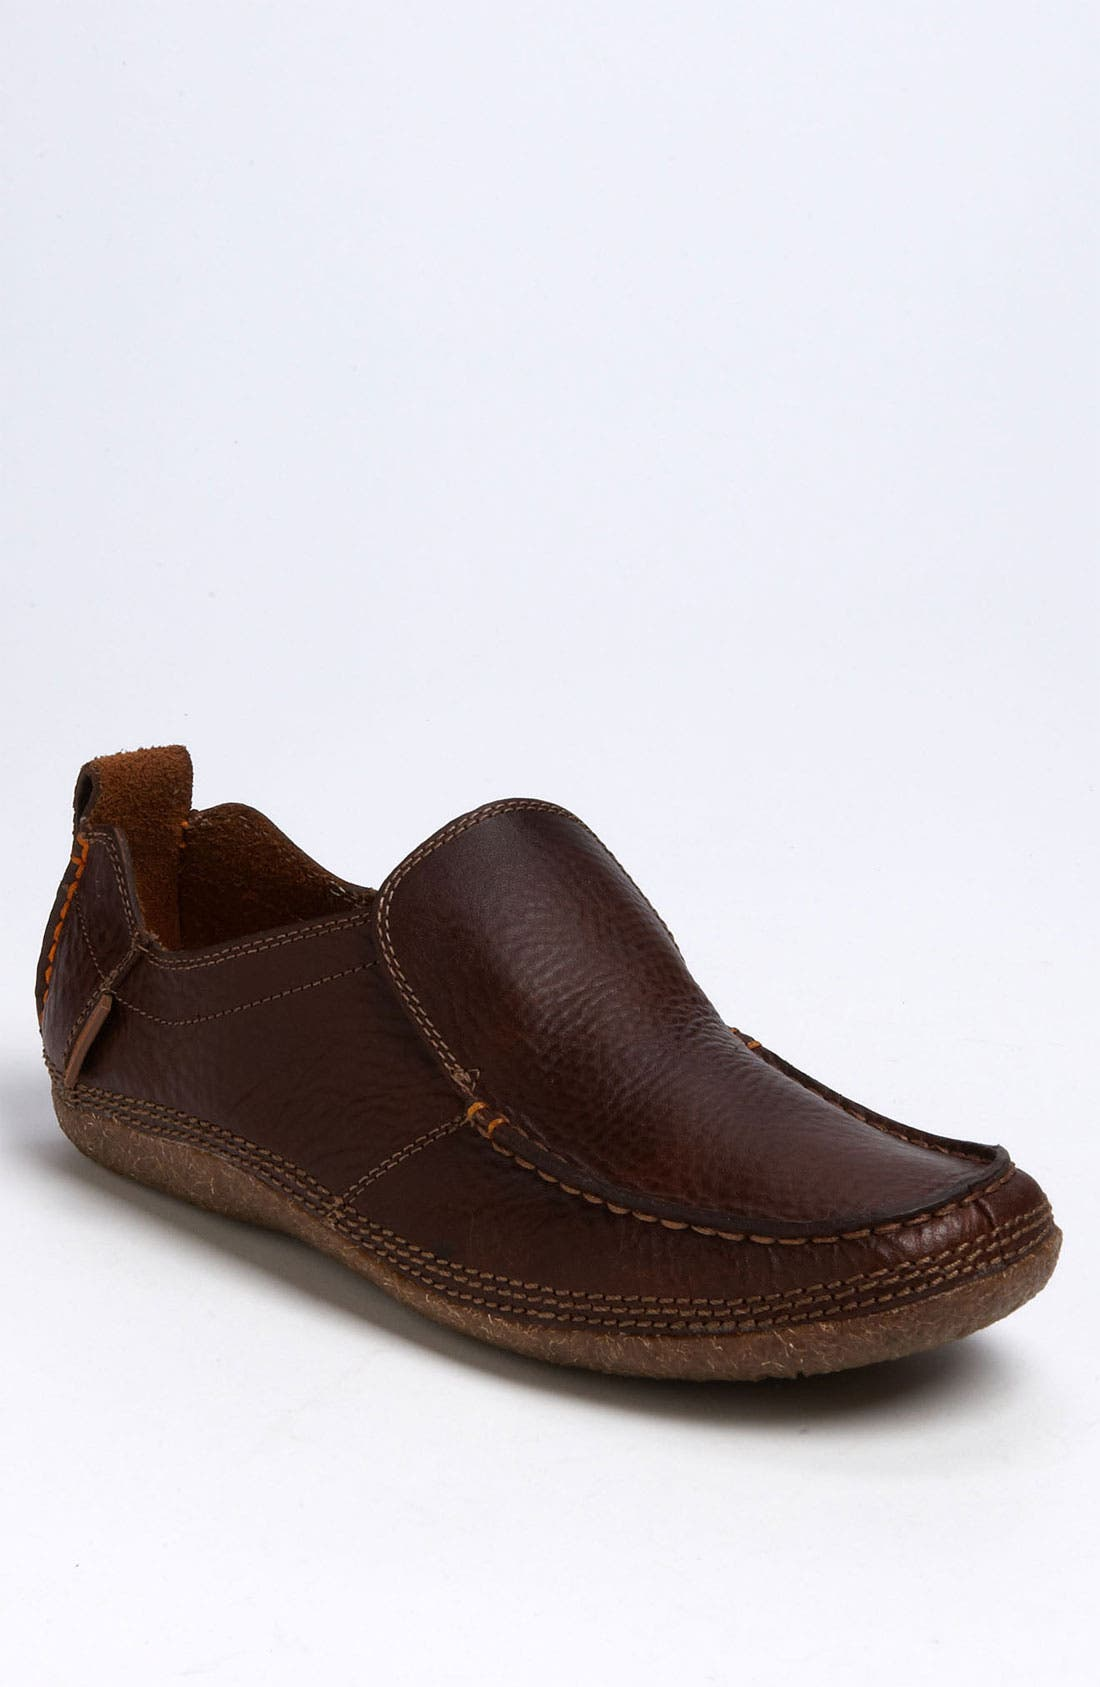 Alternate Image 1 Selected - Hush Puppies® 'Profile' Venetian Loafer